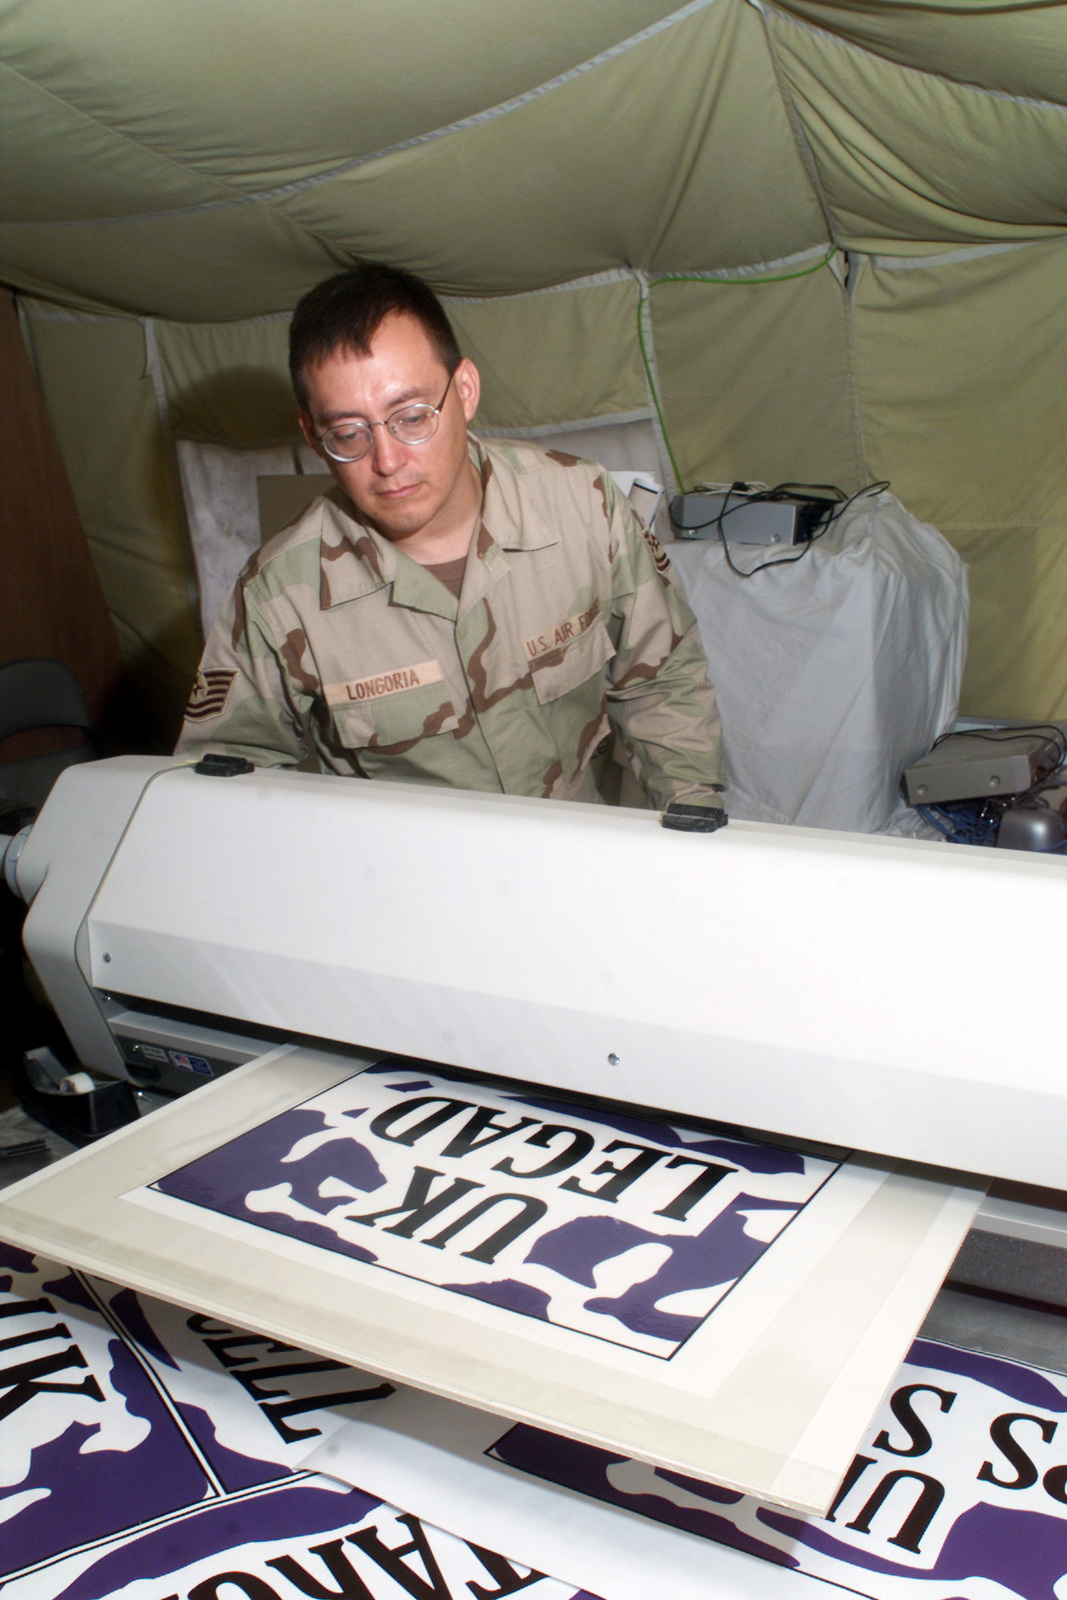 US Air Force (USAF) Technical Sergeant (TSGT) Christopher Longoria, Graphics Craftsman, 379th Expeditionary Communication Squadron (ECS), Al Udeid AB Qatar, laminates a graphics poster at Al Udeid AB Qatar, during Operation ENDURING FREEDOM